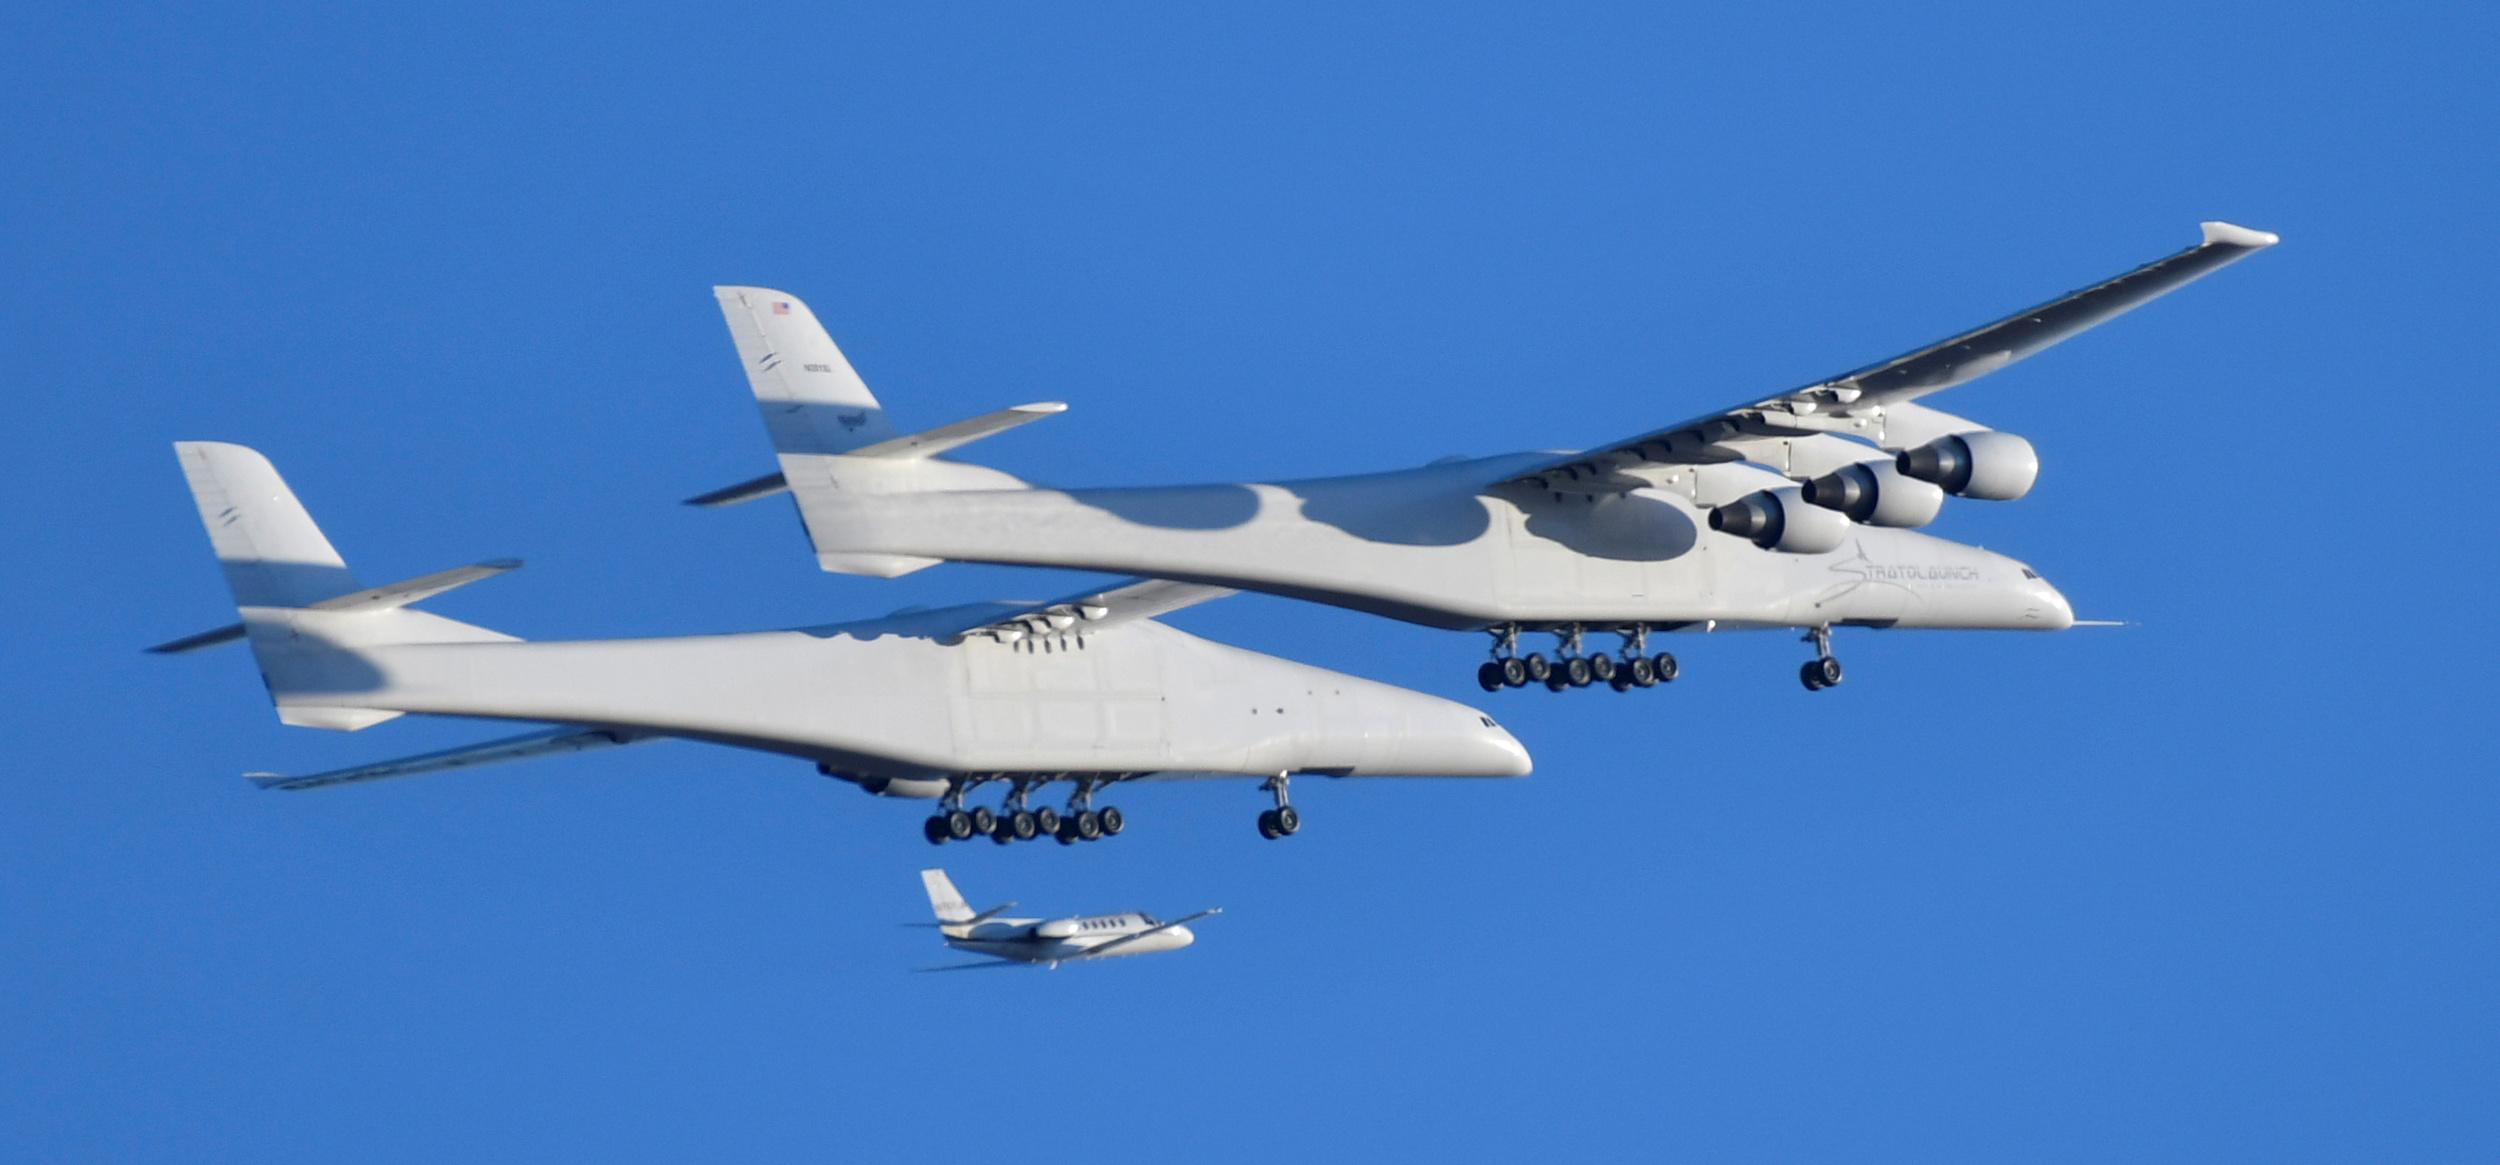 The world's largest airplane, built by the late Paul Allen's company Stratolaunch Systems, makes its first test flight in Mojave, California, U.S. April 13, 2019.  REUTERS/Gene Blevins